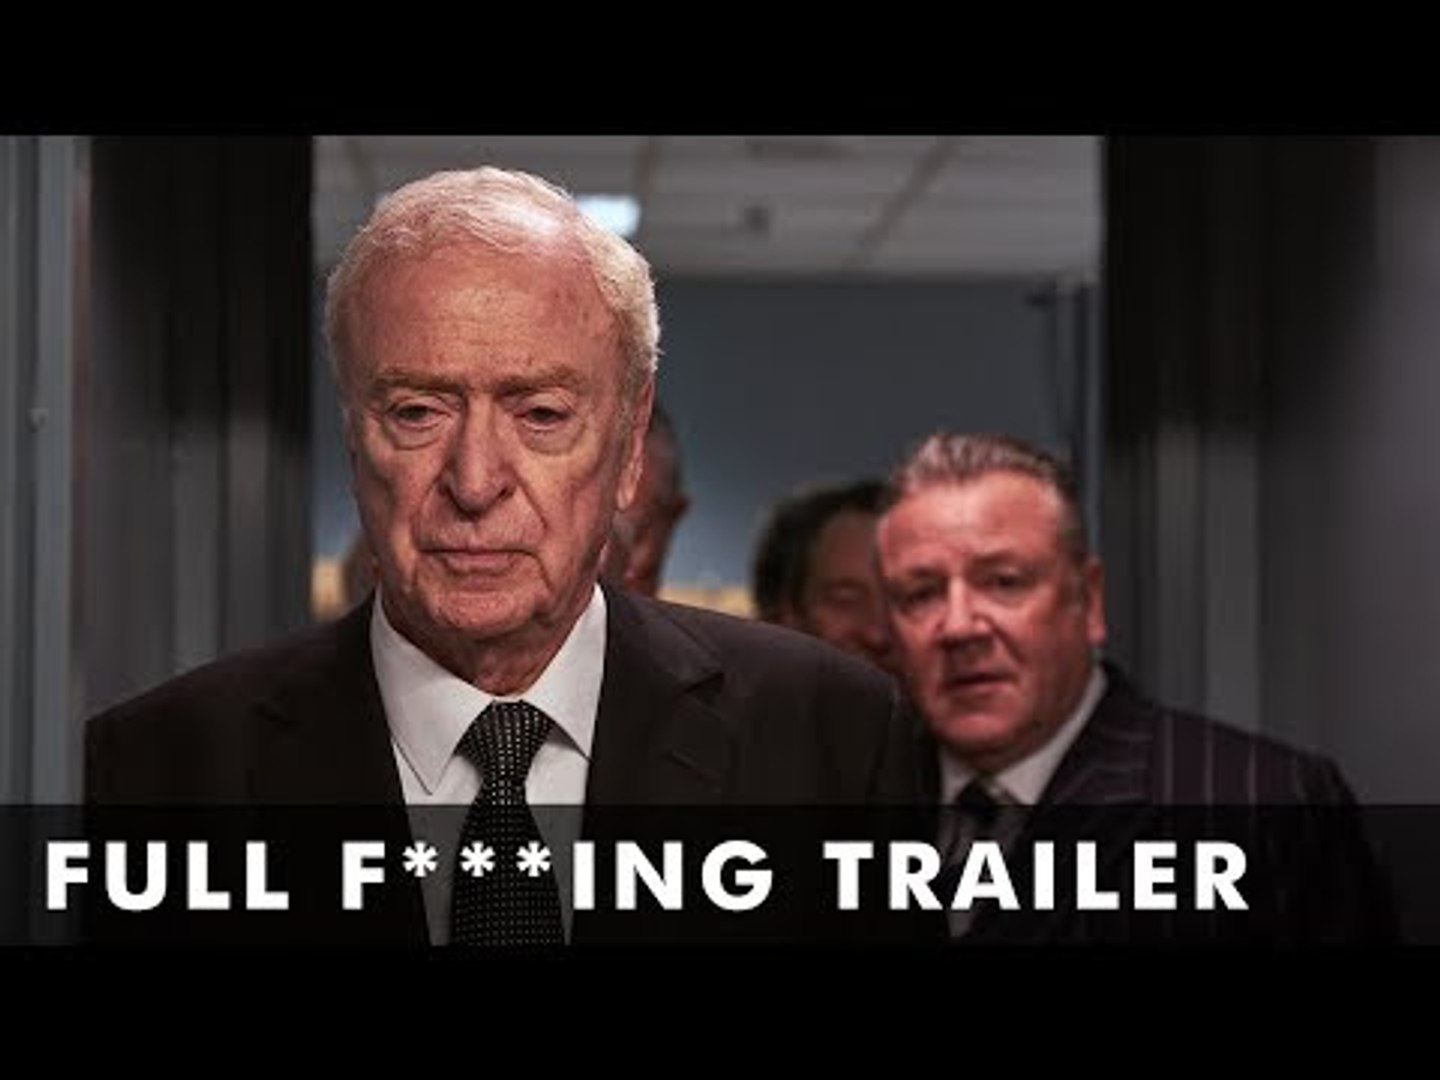 KING OF THIEVES – Full F***ing Trailer – Starring Michael Caine